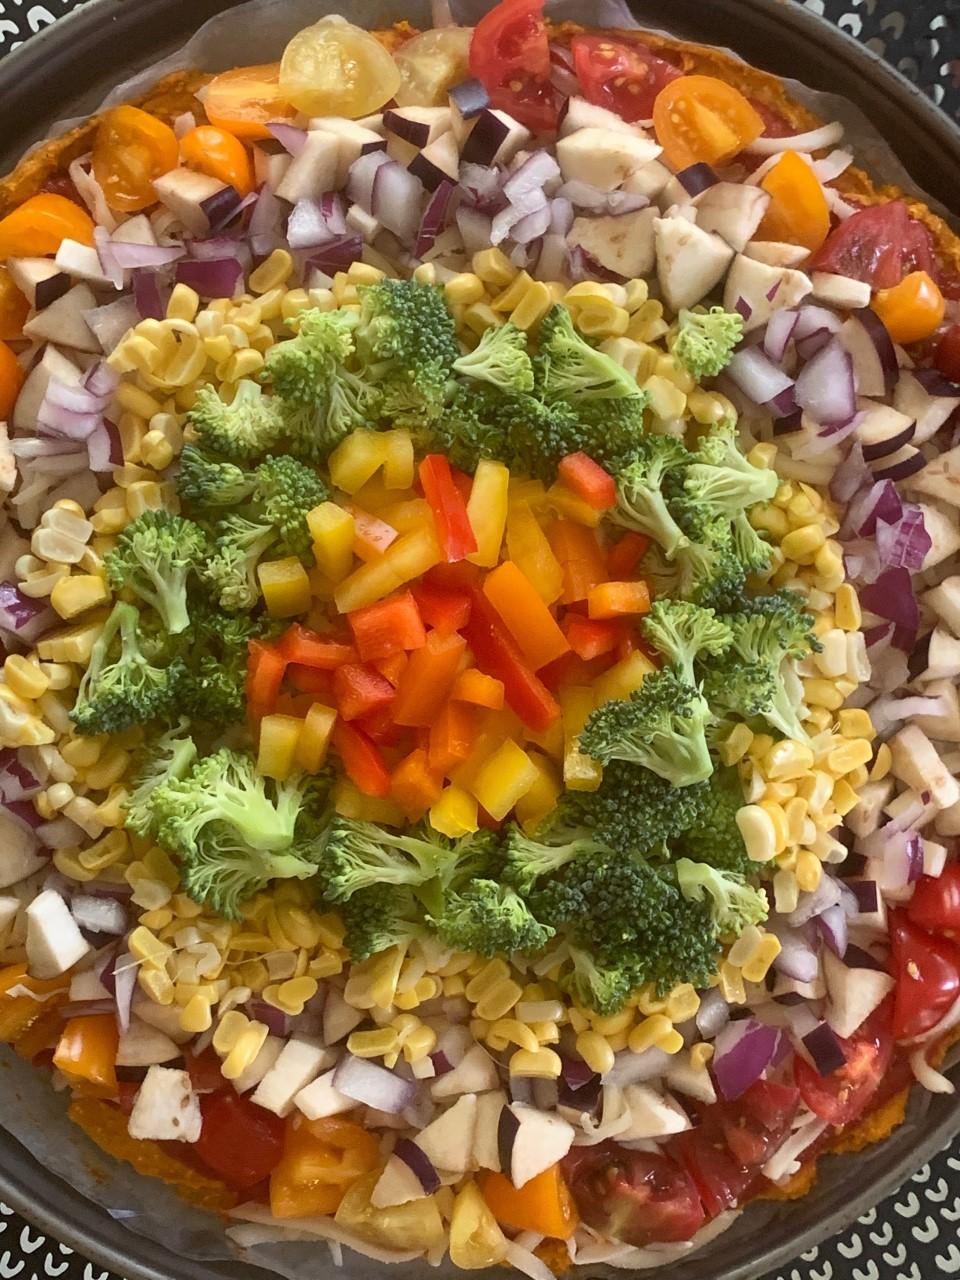 Rainbow Pizza with a sweet potato crust, bell peppers, onion, corn, butternut squash, eggplant, and broccoli